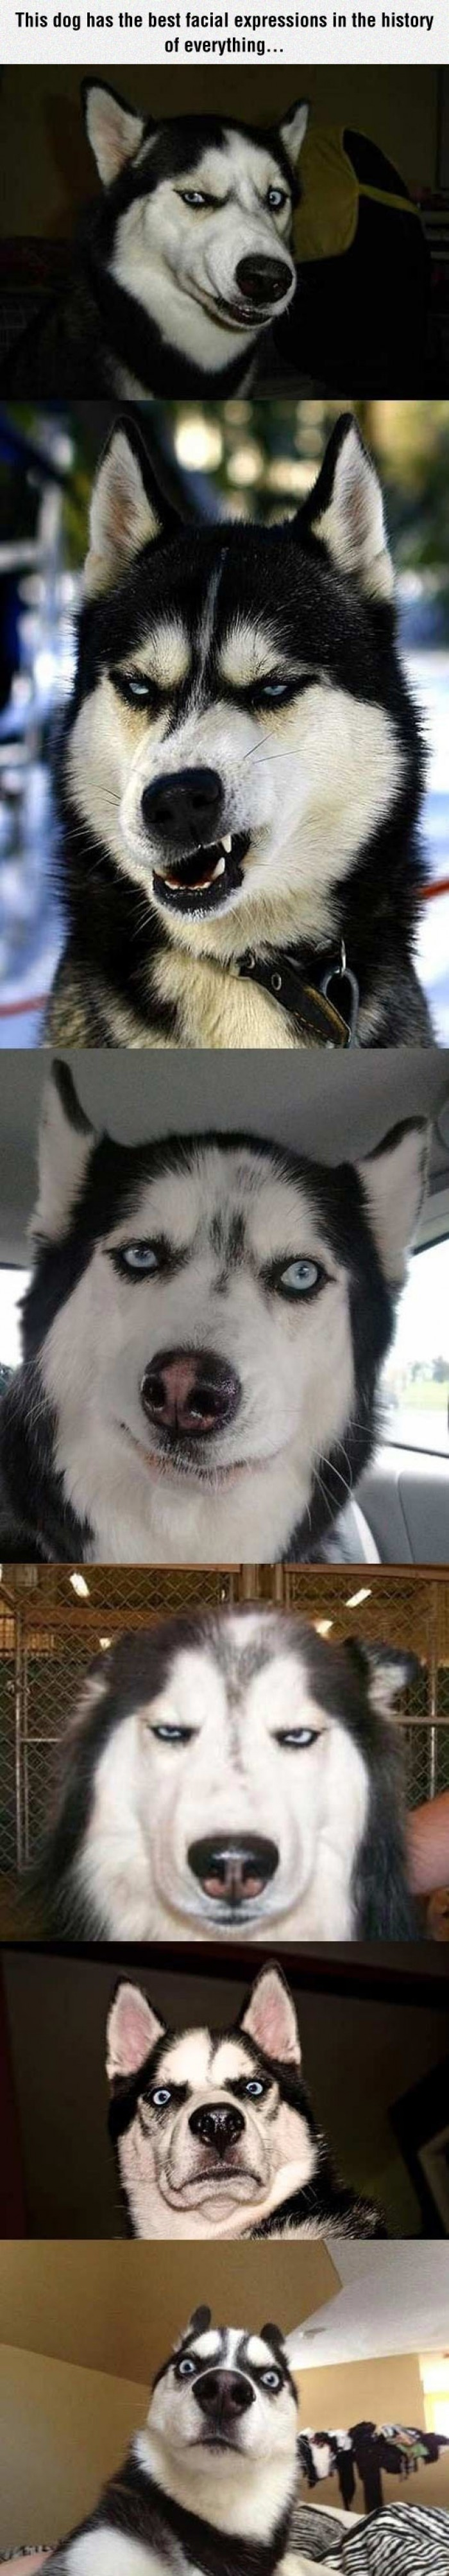 This dog has the best facial expressions...